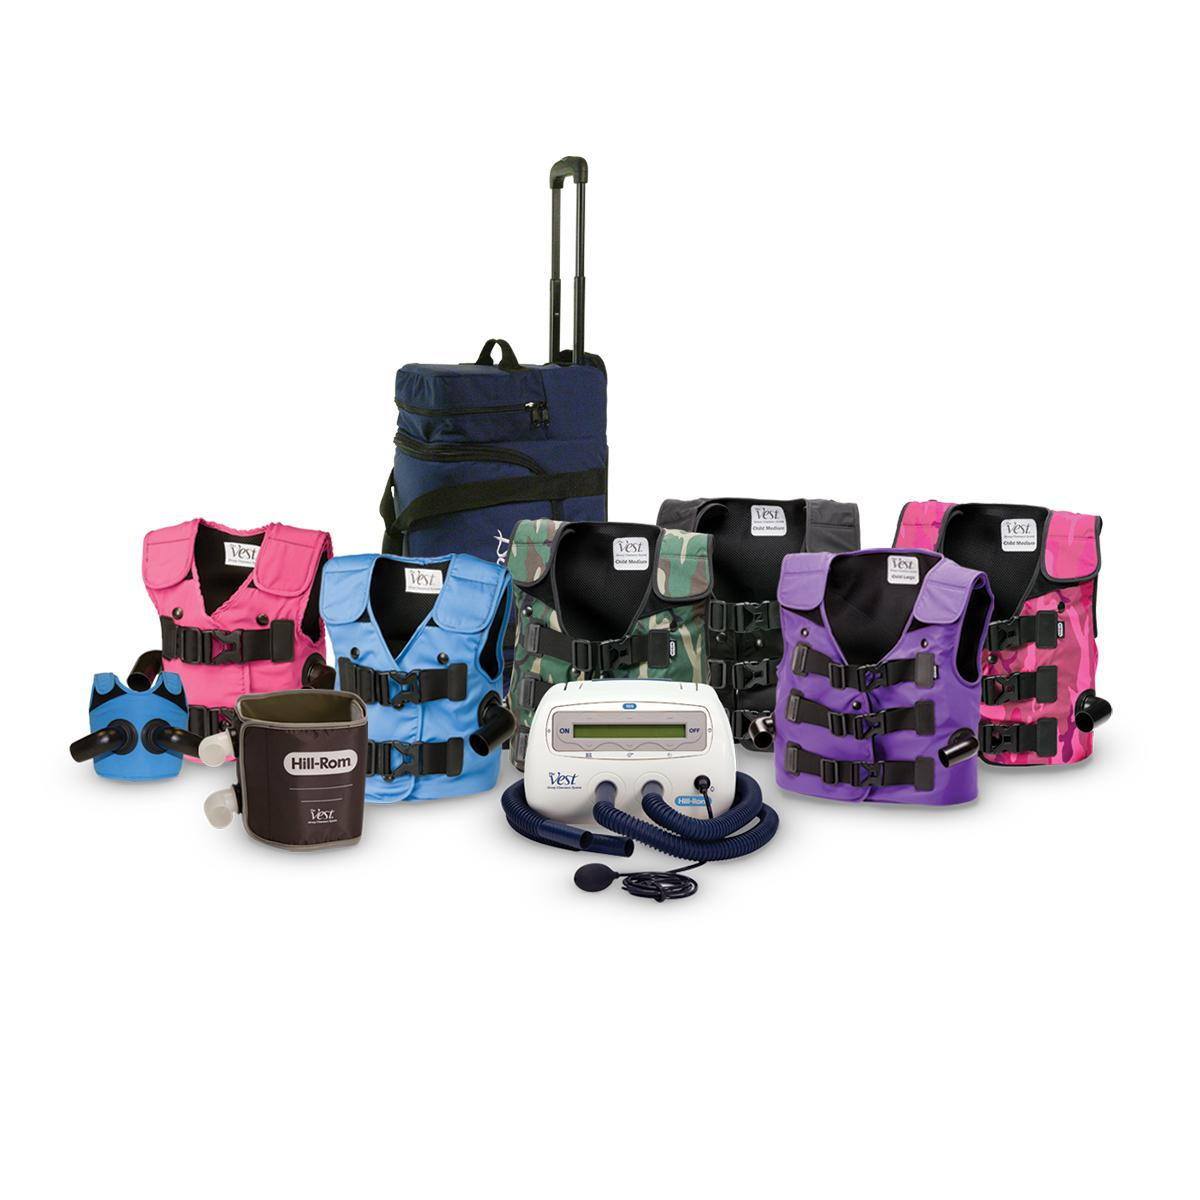 Group shot of vests in a variety of colors with a wrap garment, control unit, air hoses and bag